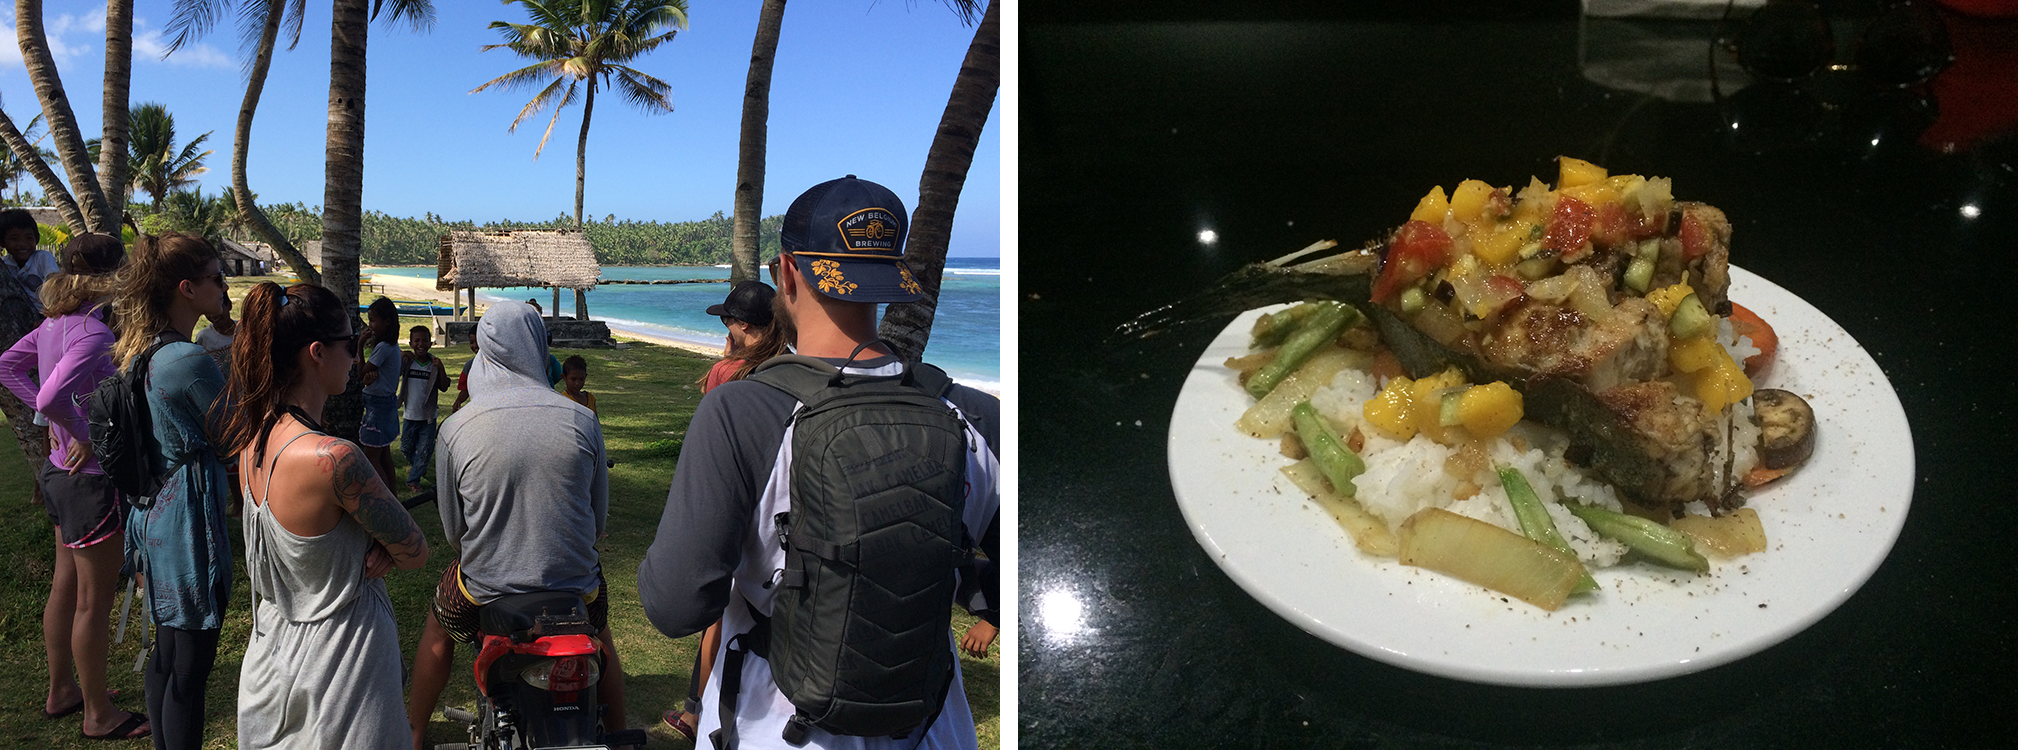 Left: Swarmed by kids. Right: Homemade Mahi Mahi Steaks.